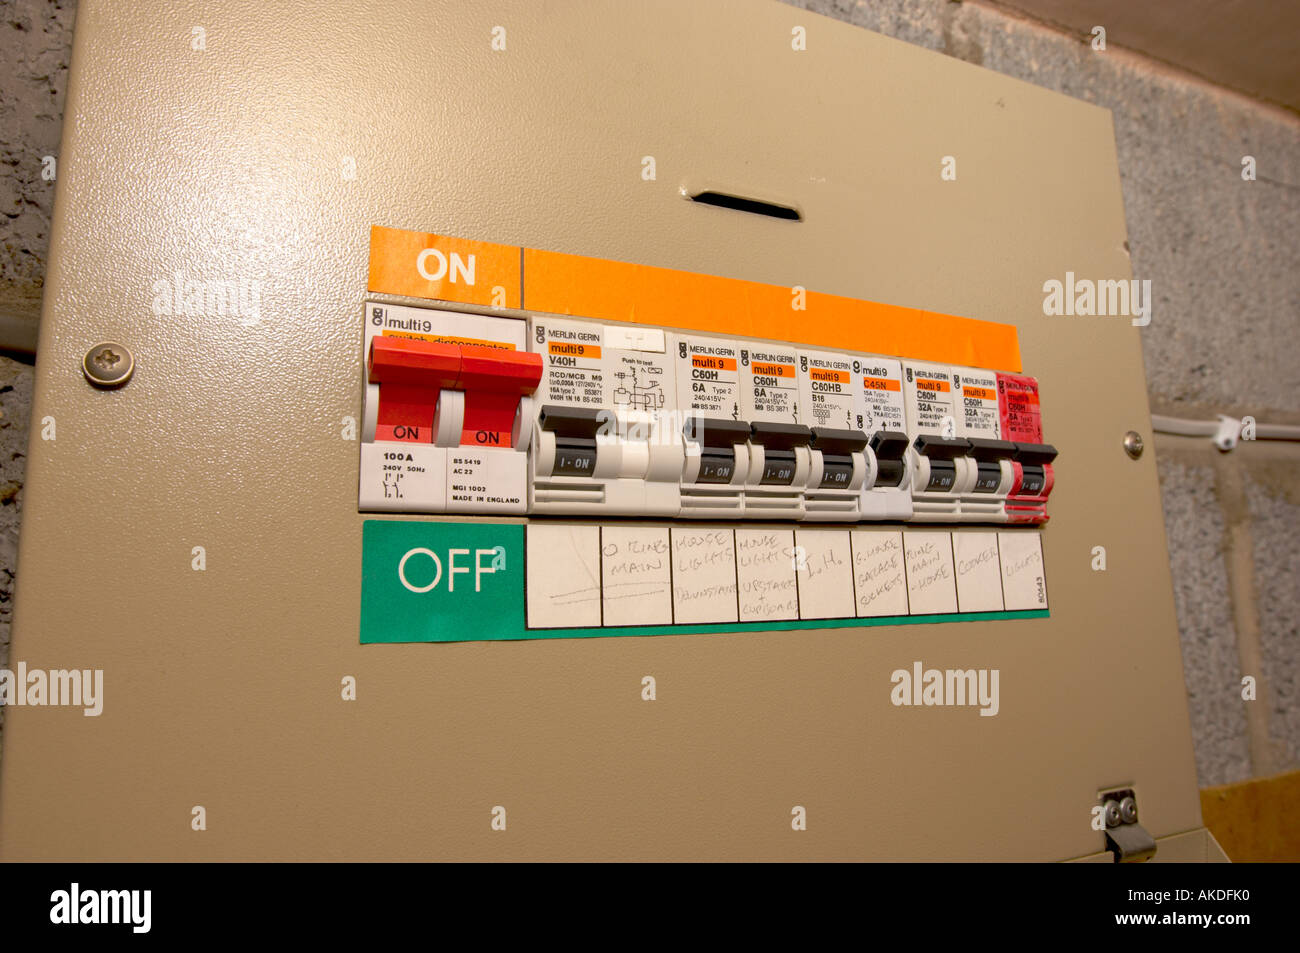 Domestic Fuse Box Stock Photos Images Alamy Circuit Breaker Image